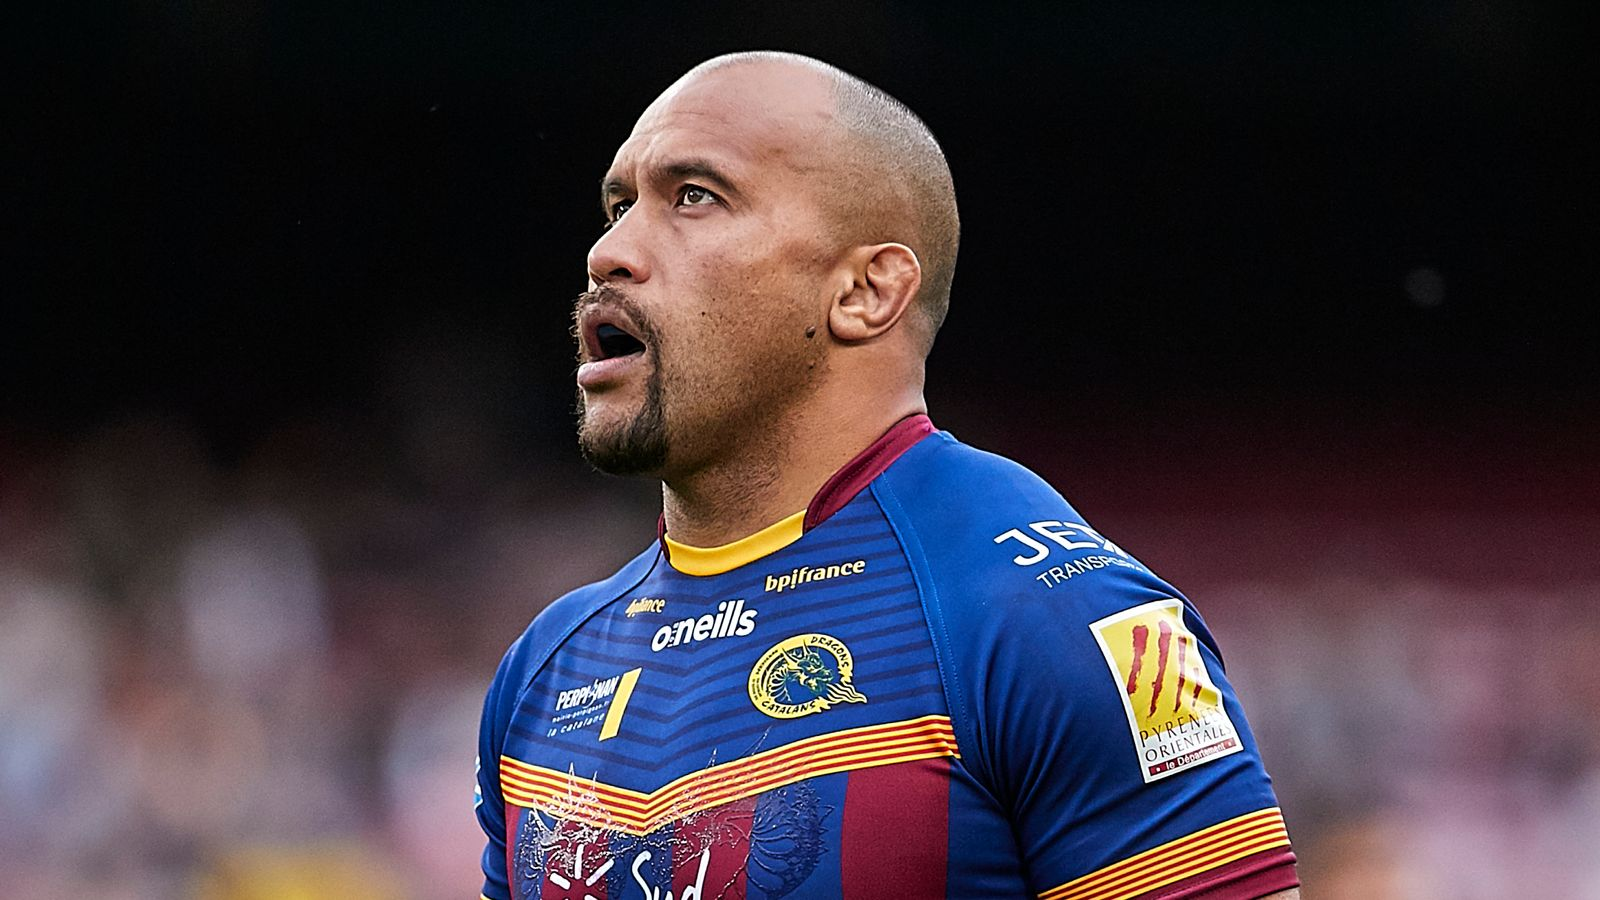 Sam Moa to leave Catalans Dragons after four seasons in Perpignan